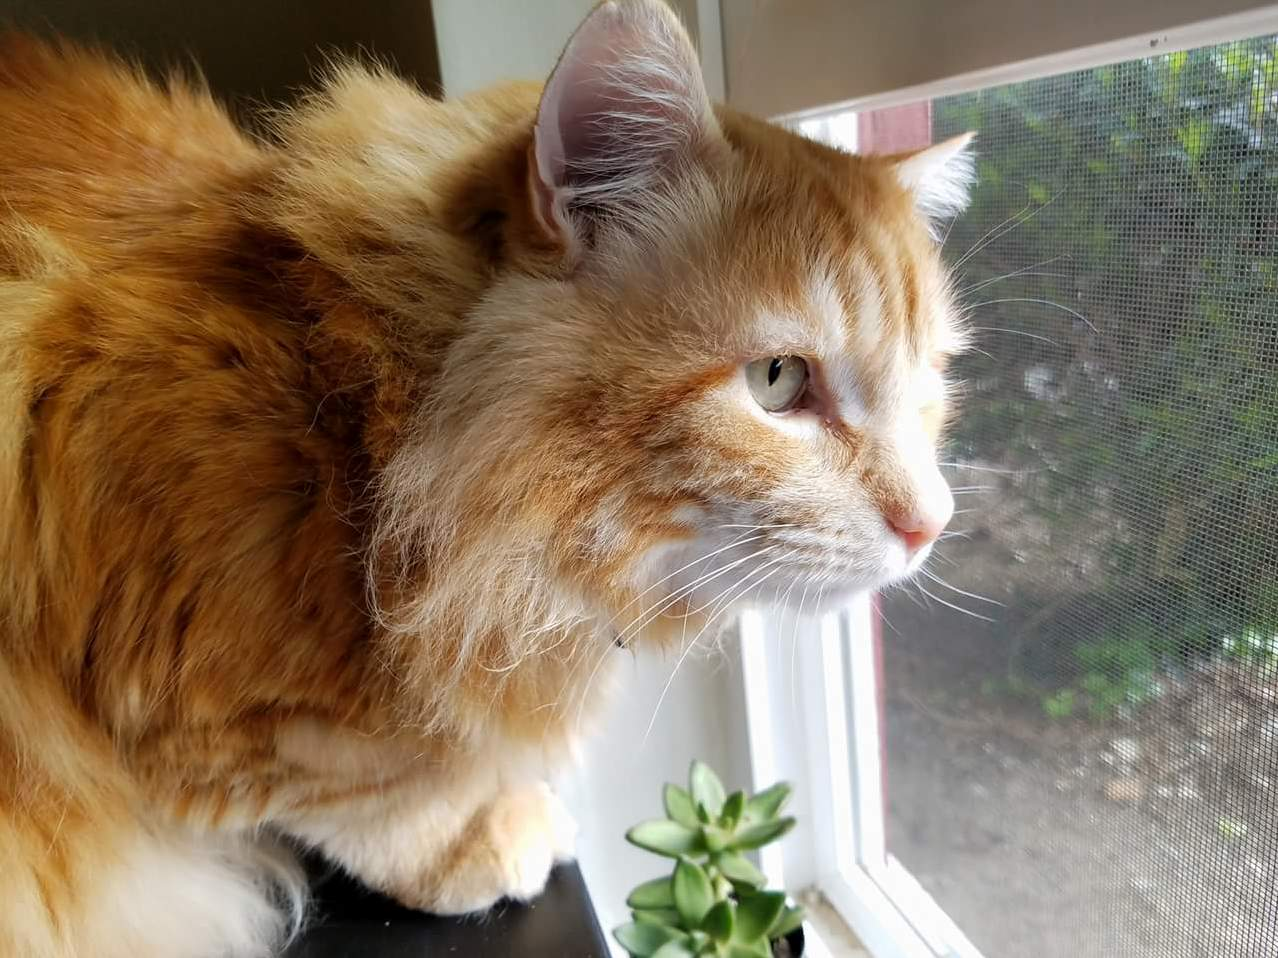 Martin stares down birds outside but would be terrified if they came inside